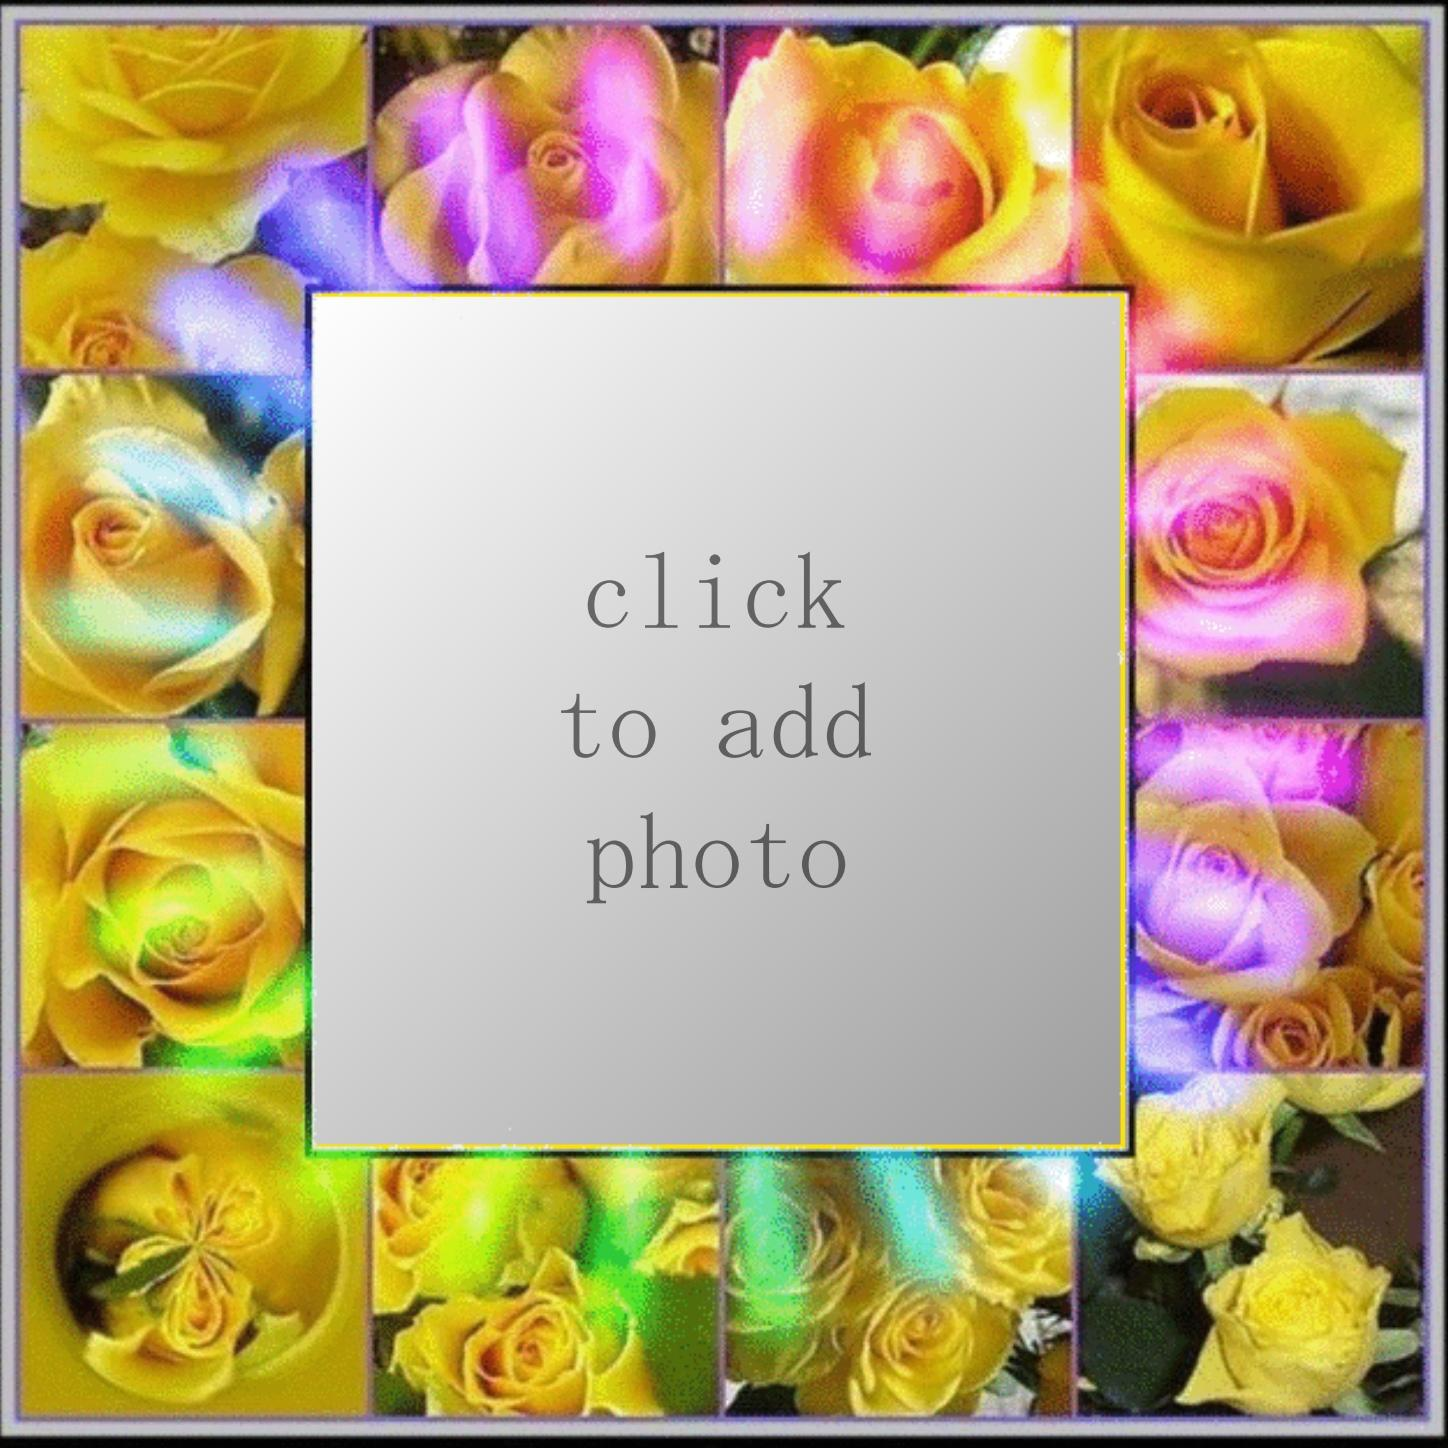 Imikimi Zo - Picture Frames - Yellow rose frame Thank you for using ...